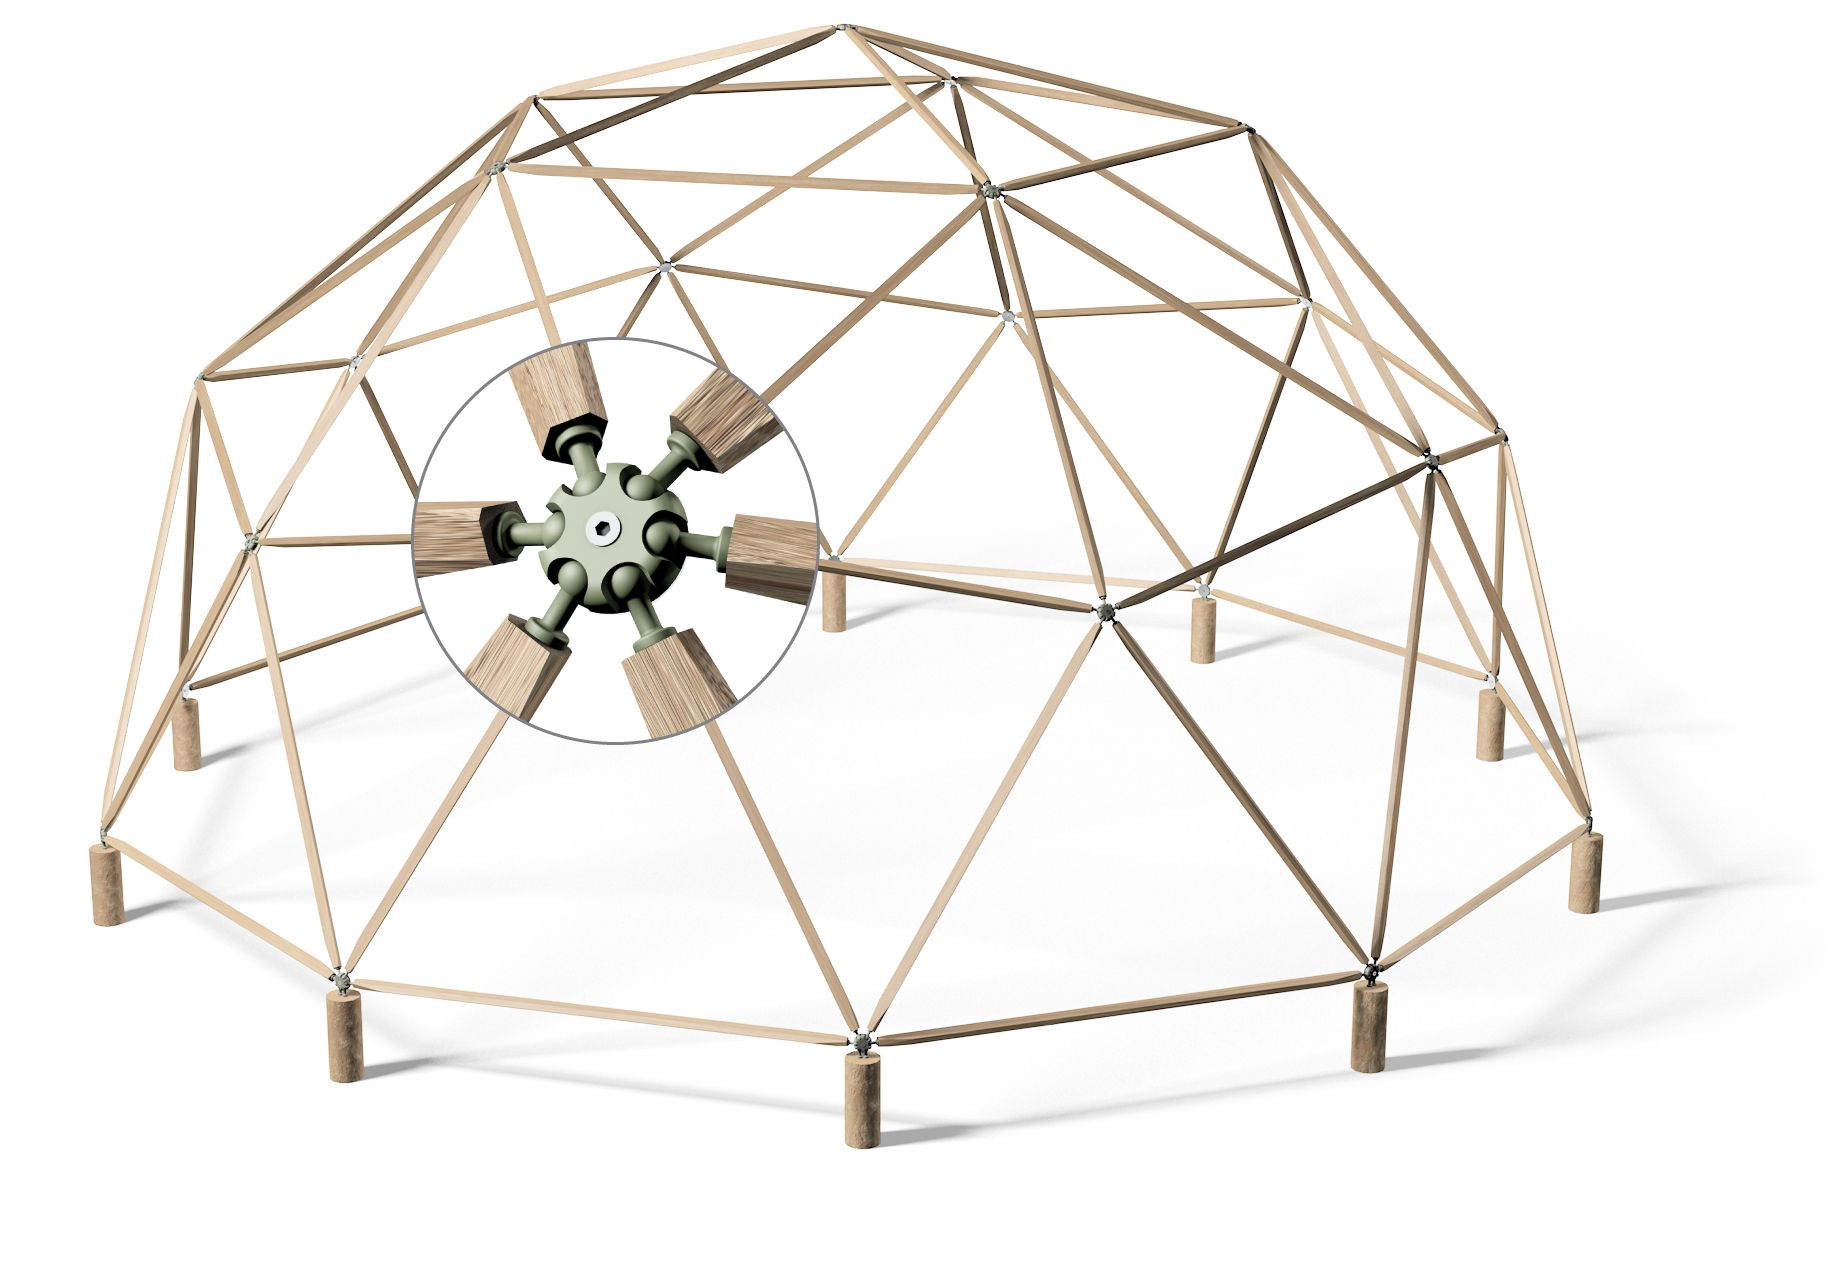 hubs = geodesic domes made simple | Burning Man in 2018 | Pinterest ...